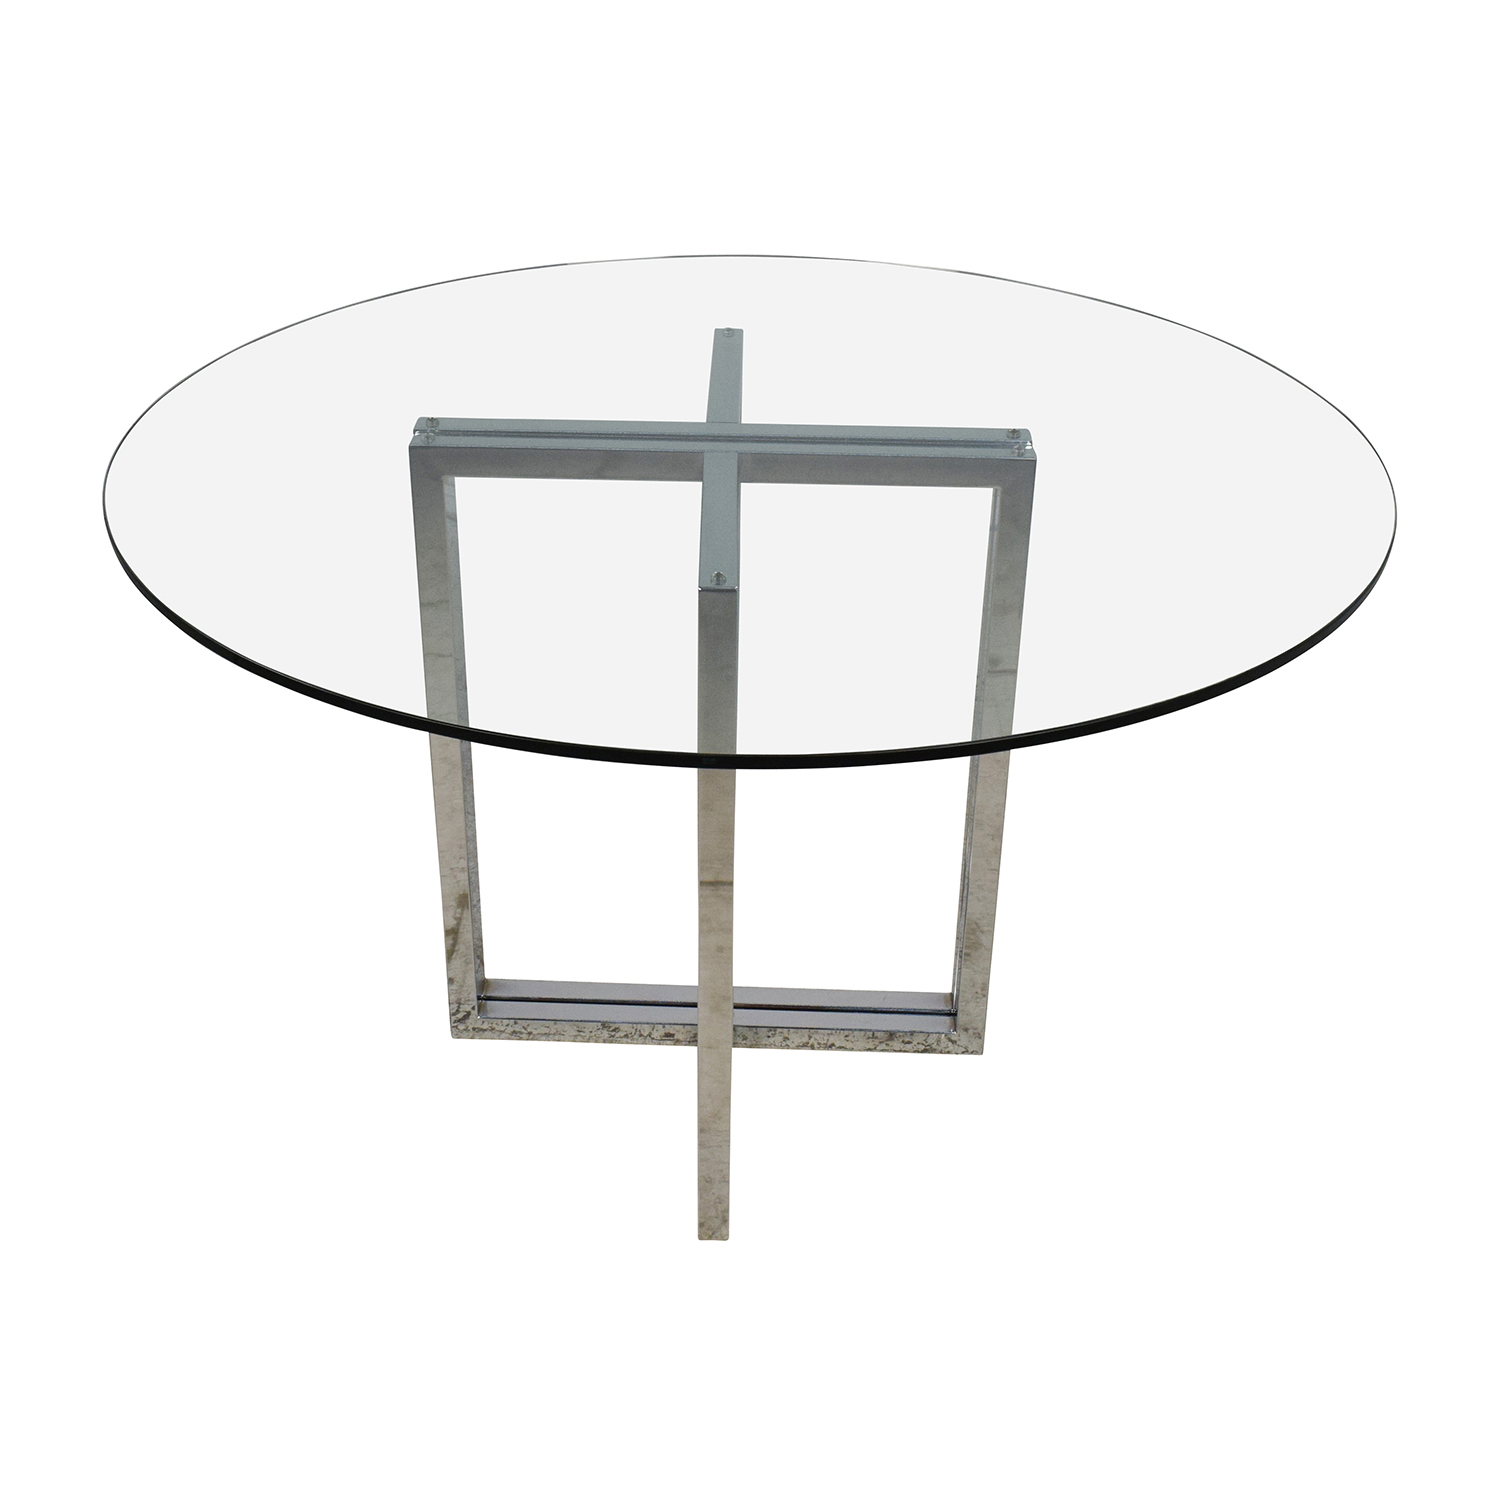 buy CB2 Silverado Chrome Round Dining Table CB2 Dinner Tables